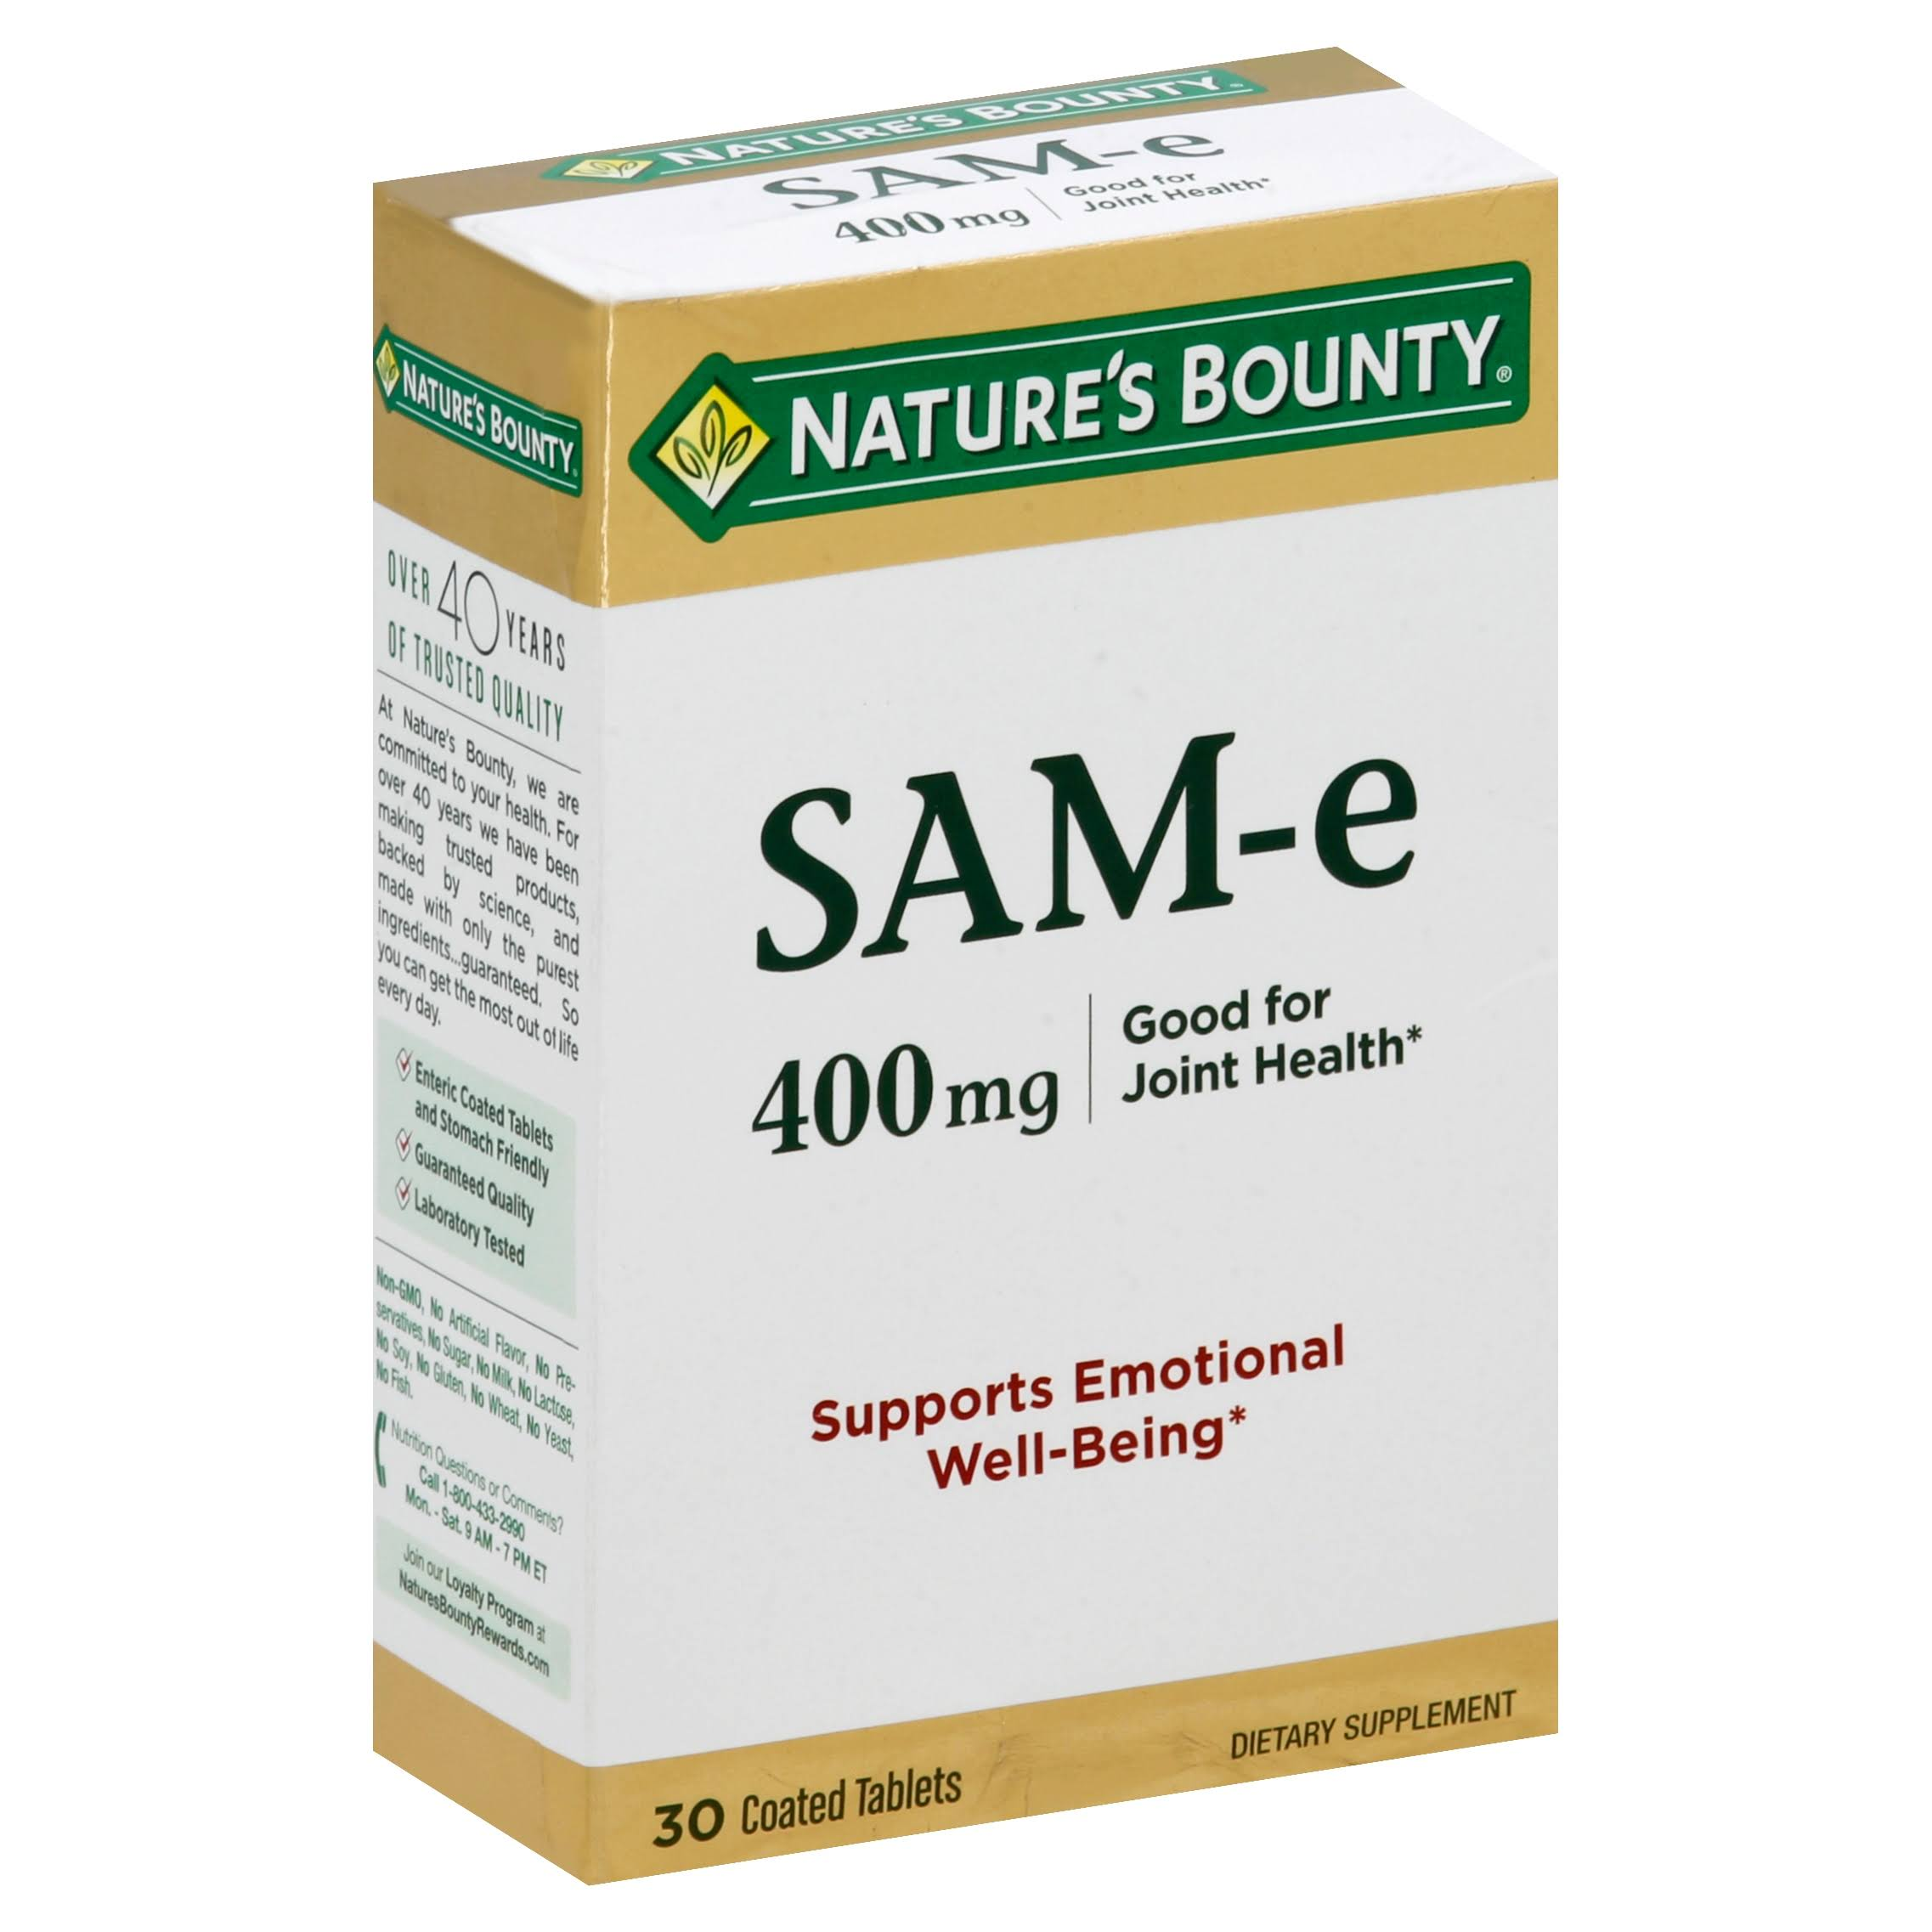 Nature's Bounty Sam-E Dietary Supplement - 30 Tablets